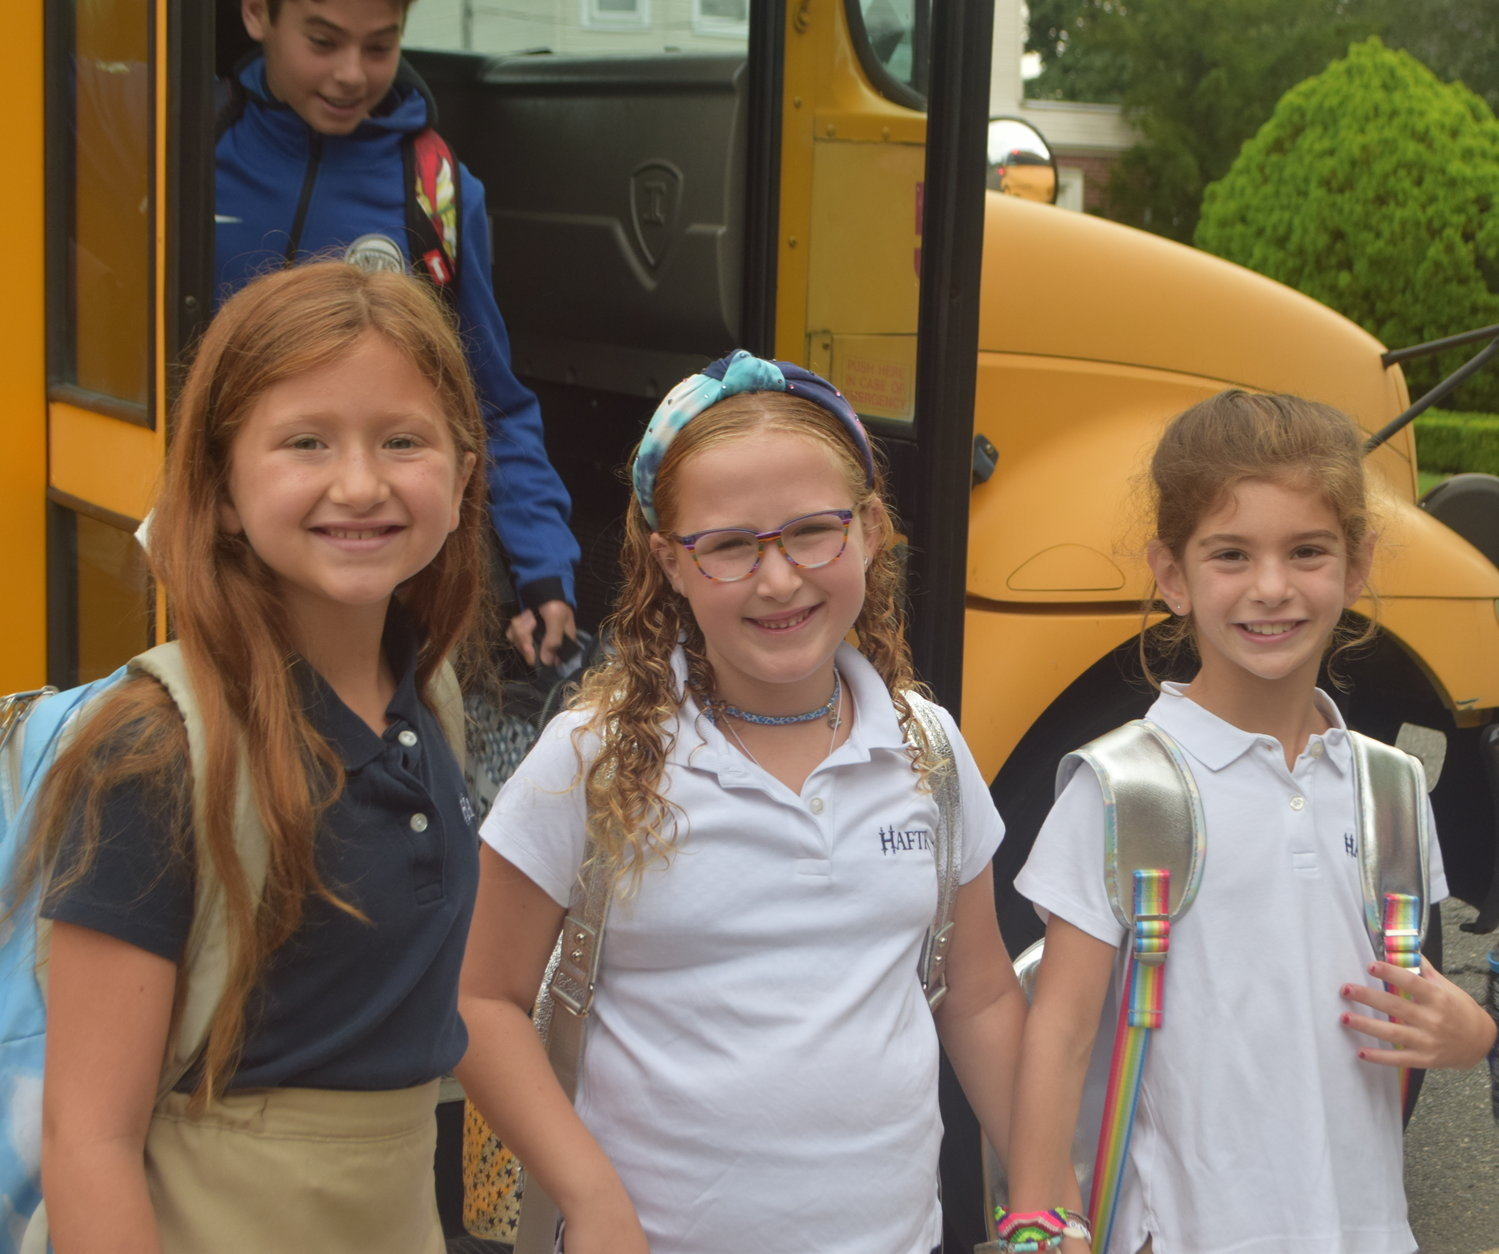 HAFTR third-graders Michelle Hersh, 8, Juliet Weinrib, 7 and Grace Rosenberg, 8, just off the bus on the first day of school, Sept. 4.